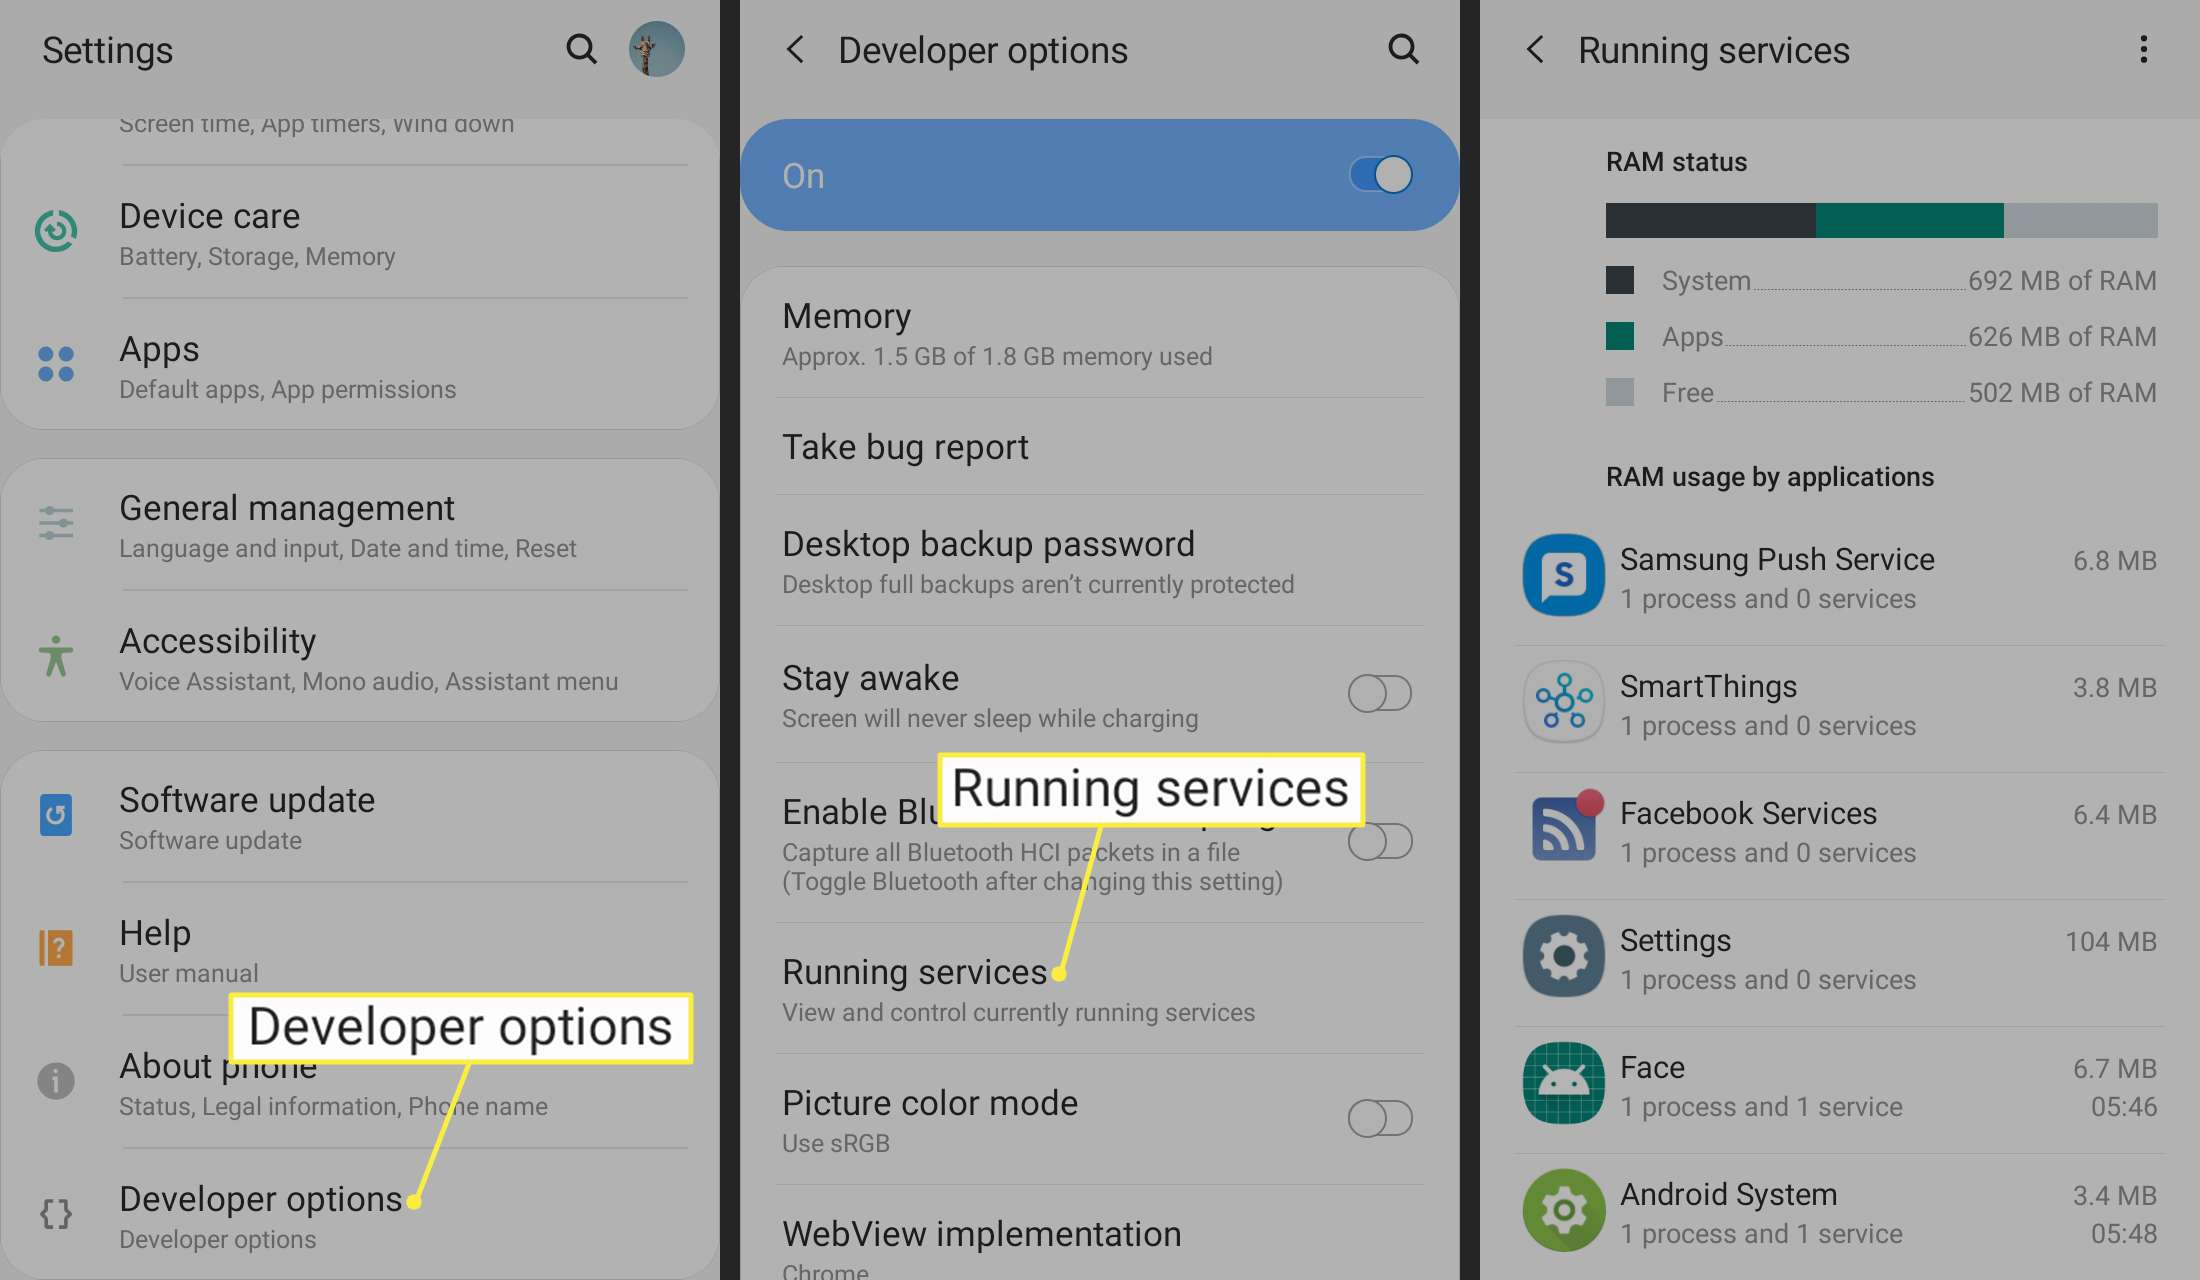 Developer options and Running services highlighted in Android settings